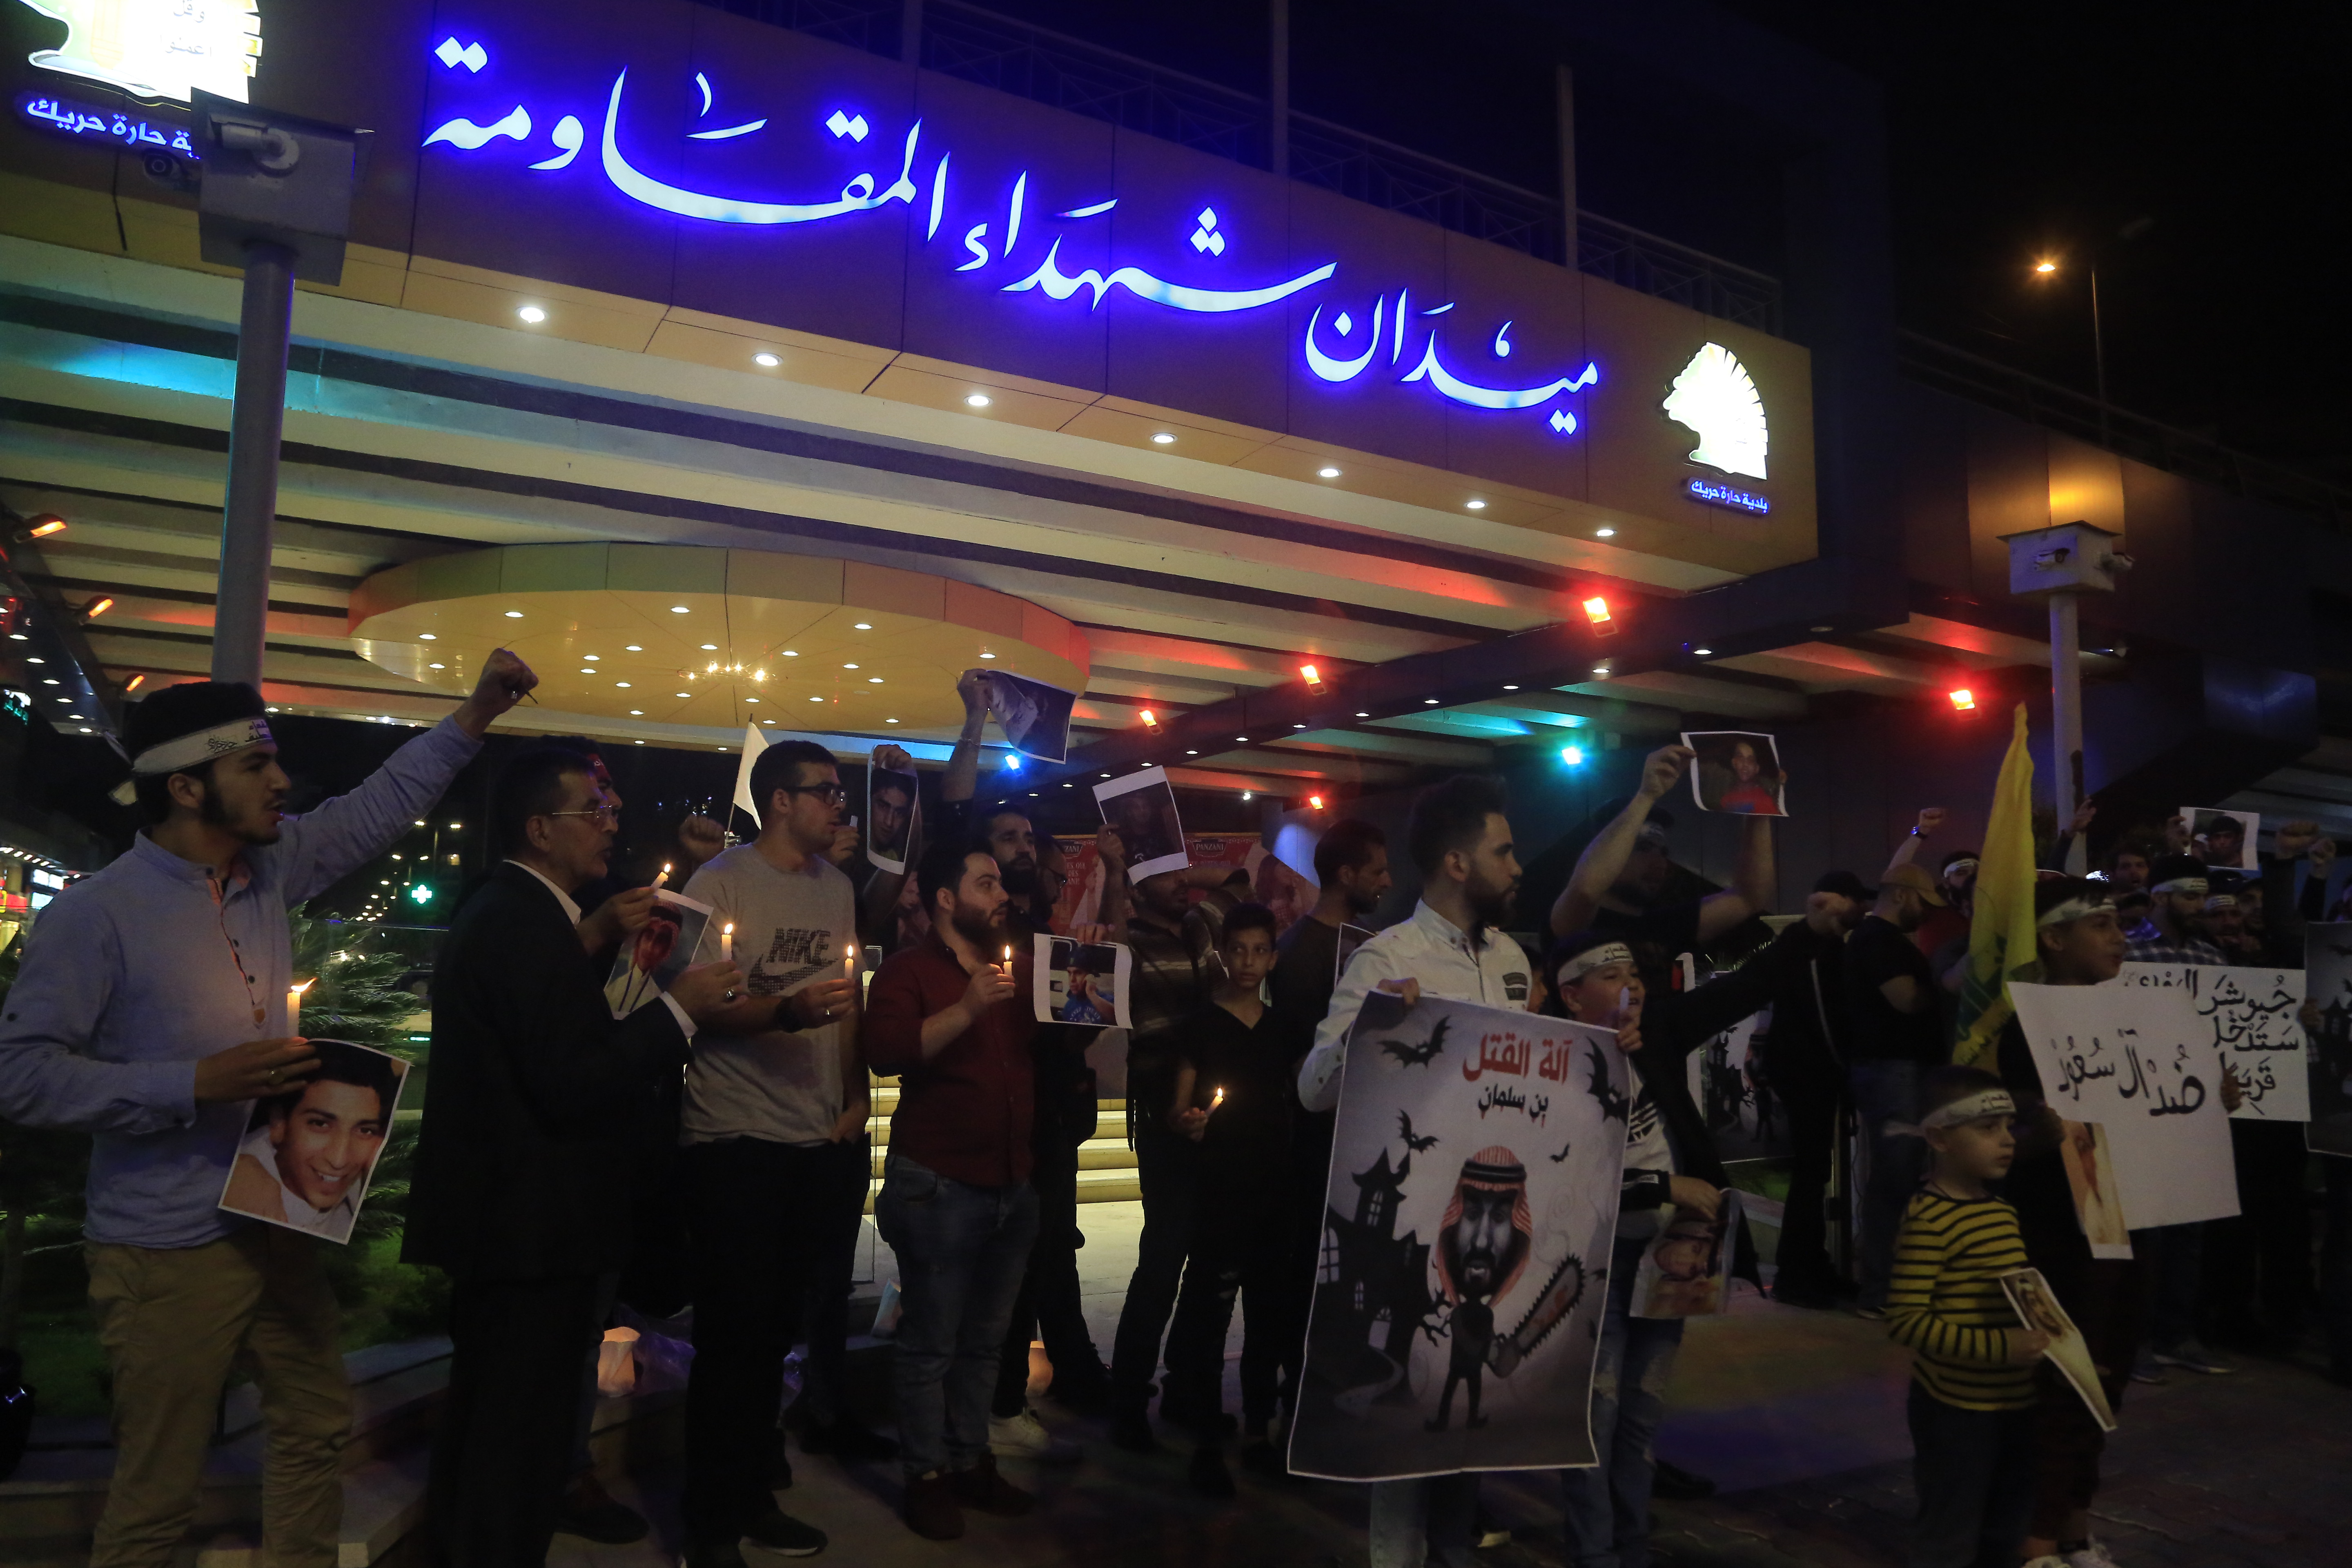 Against Al Saud's Crime, Dahieh Shows Solidarity with Families of Qatif Martyrs